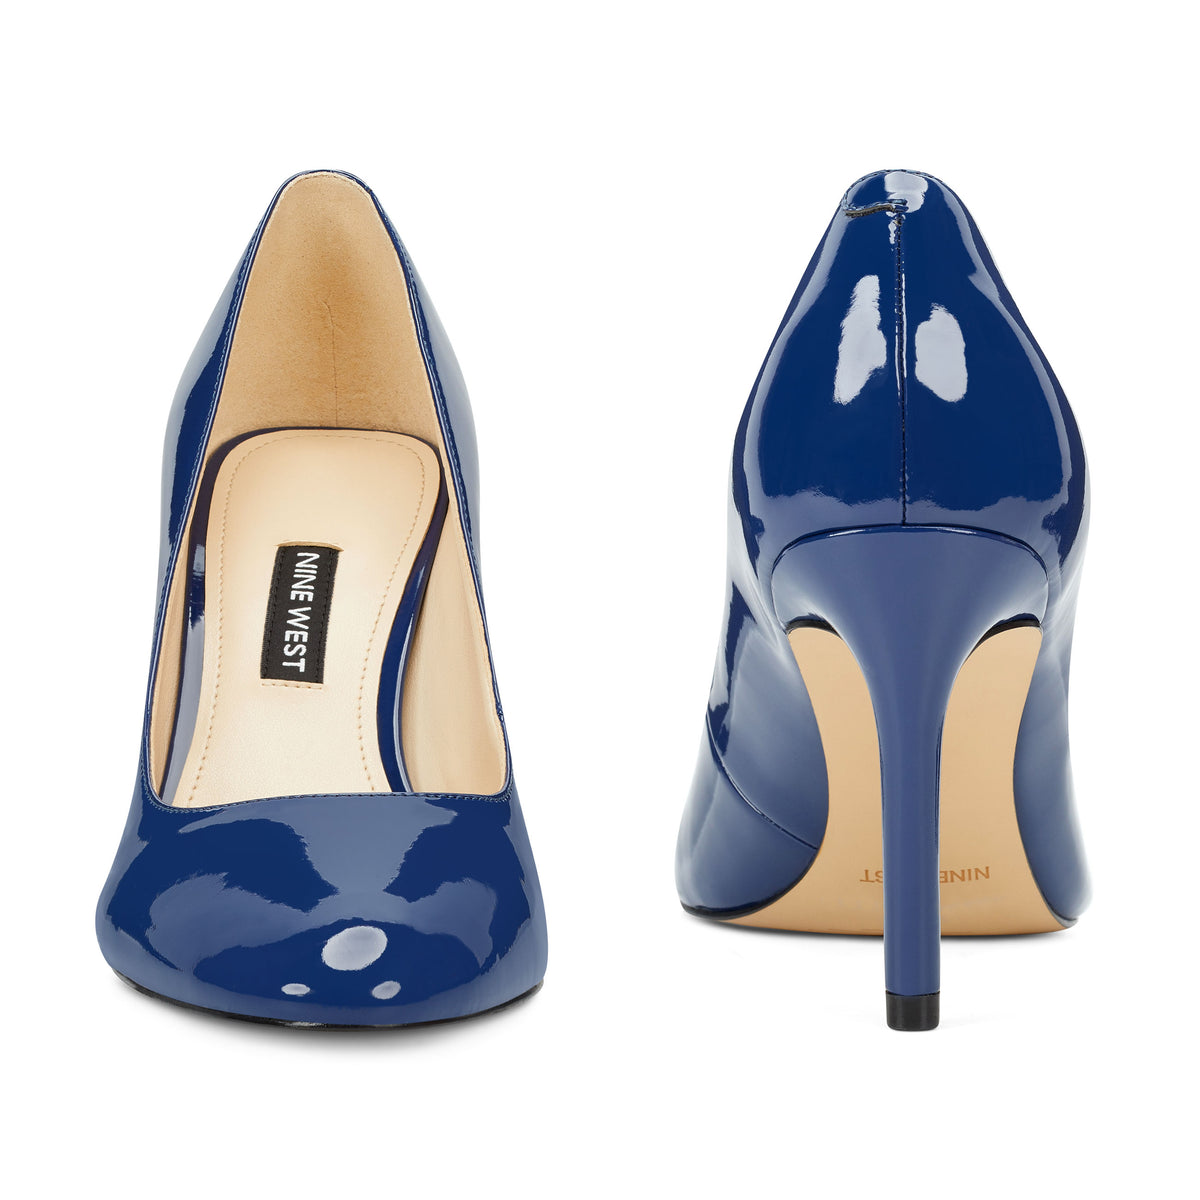 dylan-round-toe-pumps-in-true-blue-leather